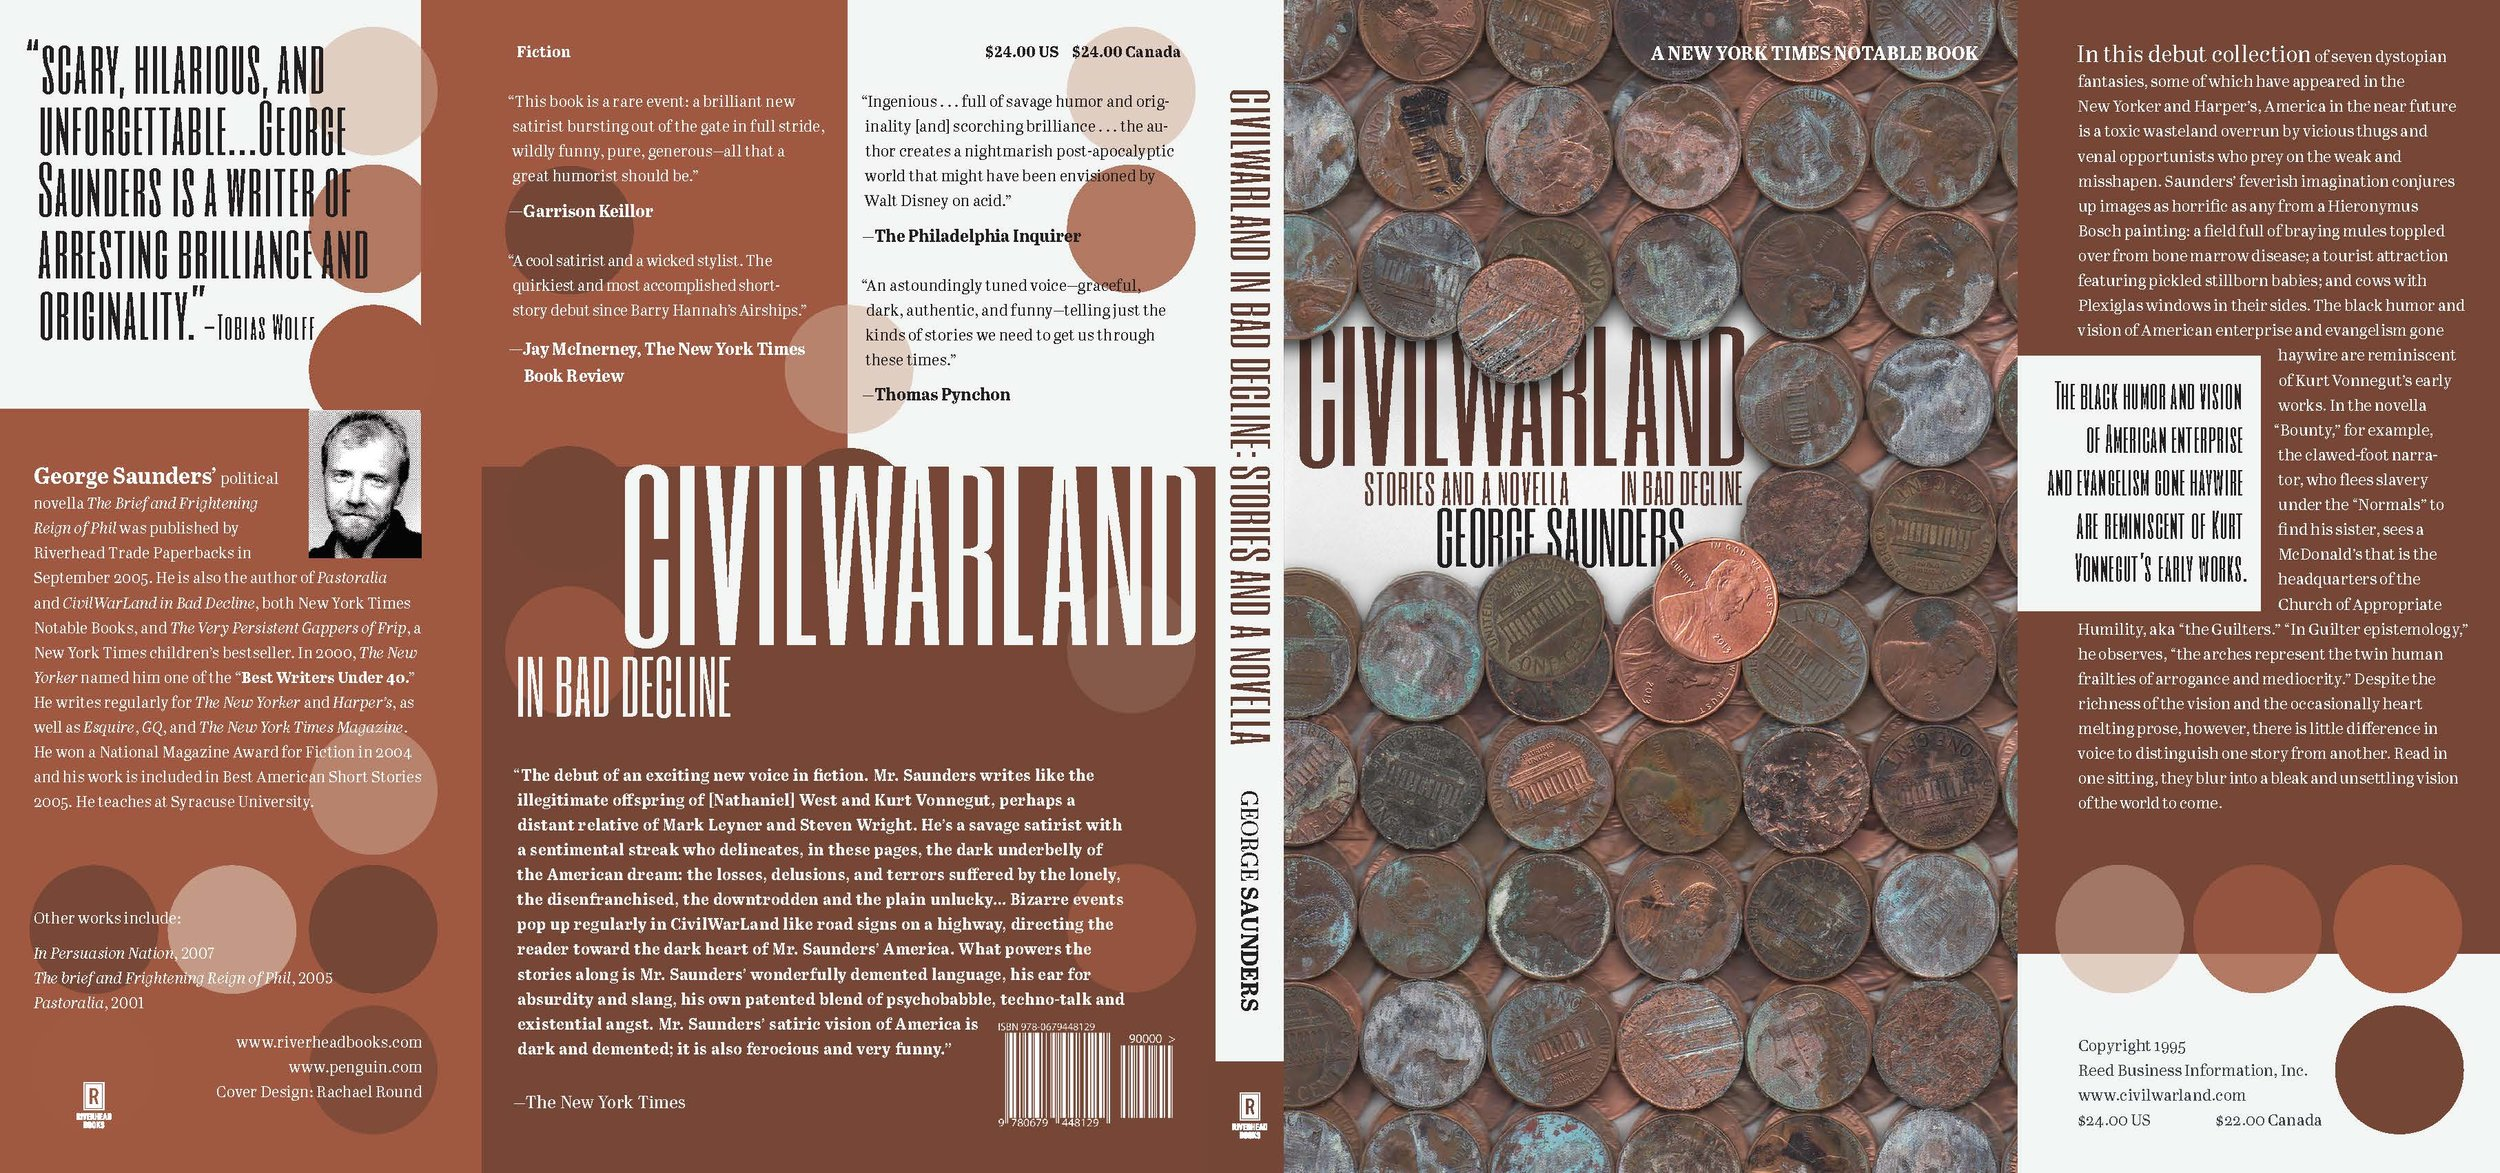 CivilWarLand Book Cover.jpg